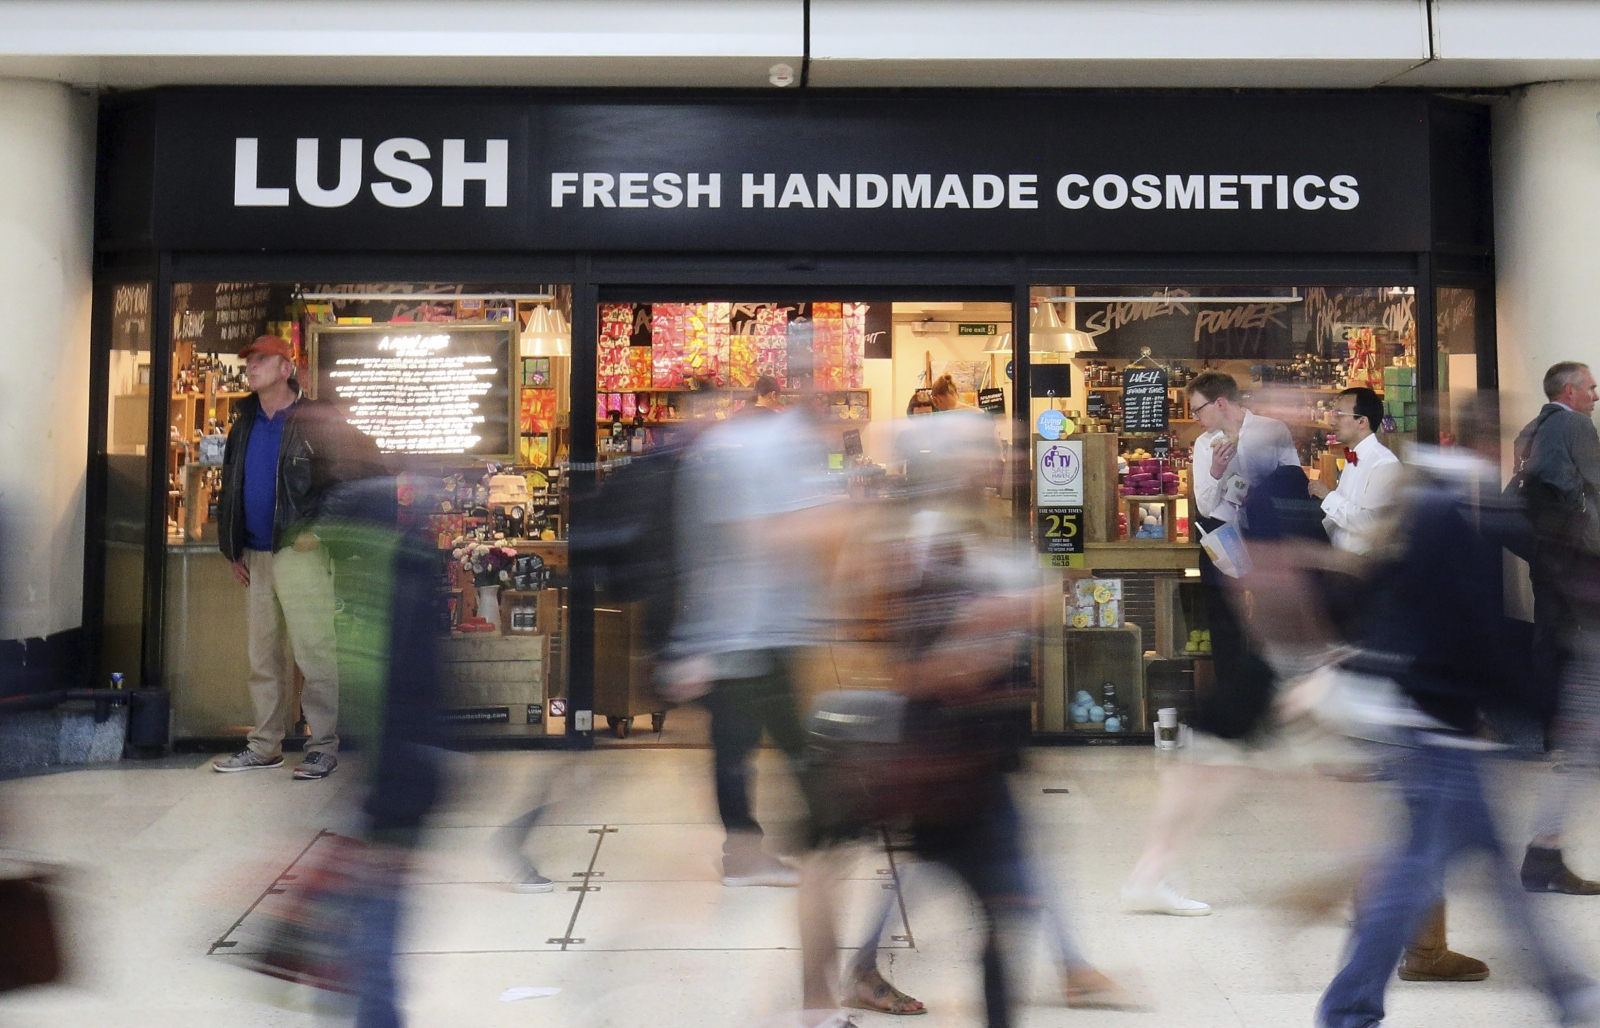 Lush Cosmetics store in London